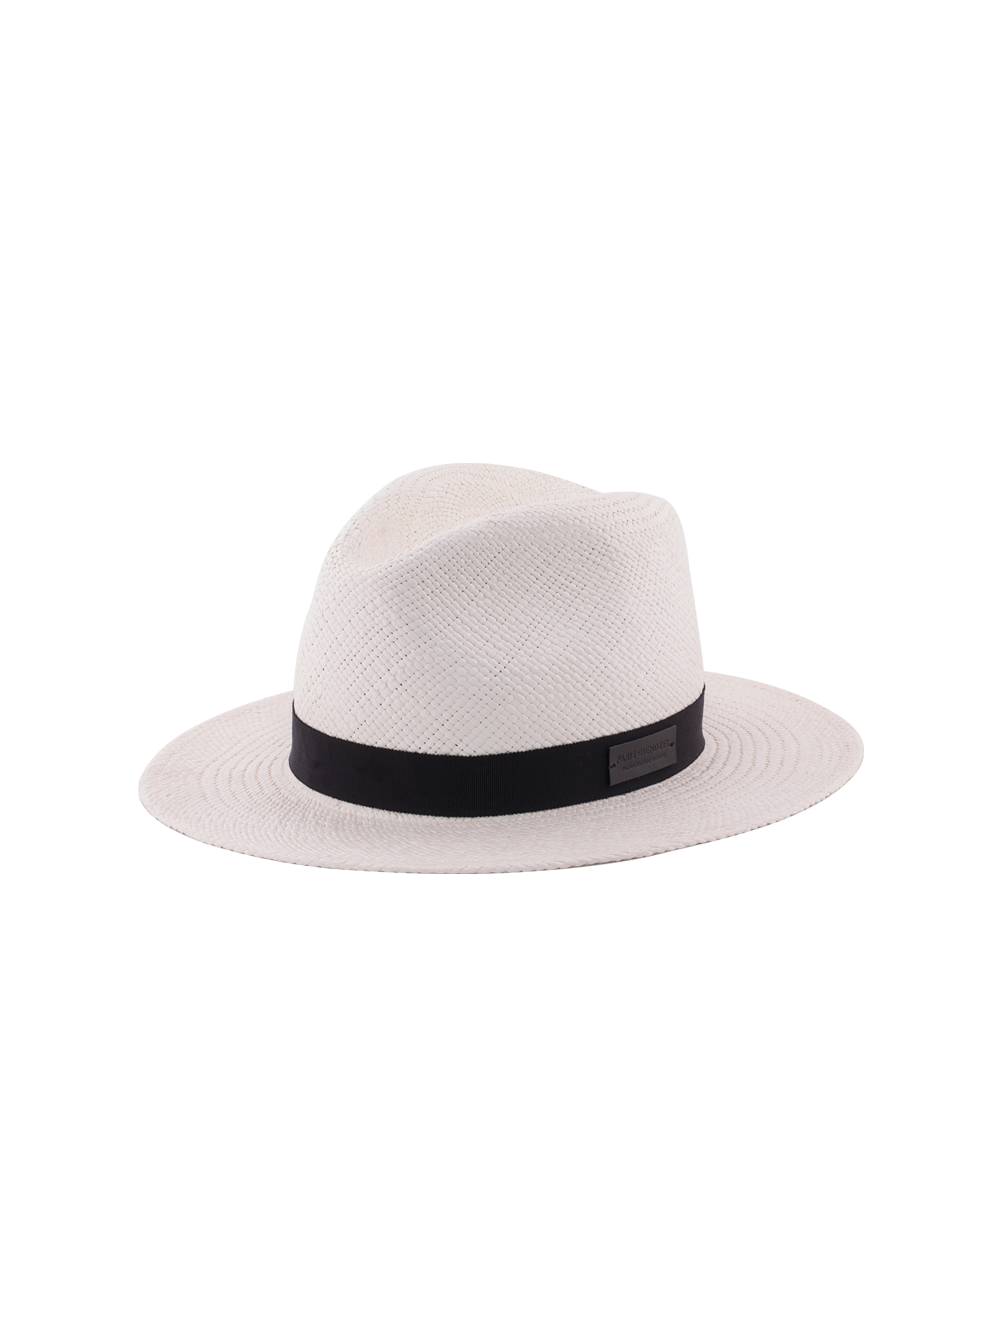 White Fedora - Panama Hat - Paris+Hendzel Handcrafted Goods 38a7c9a1927